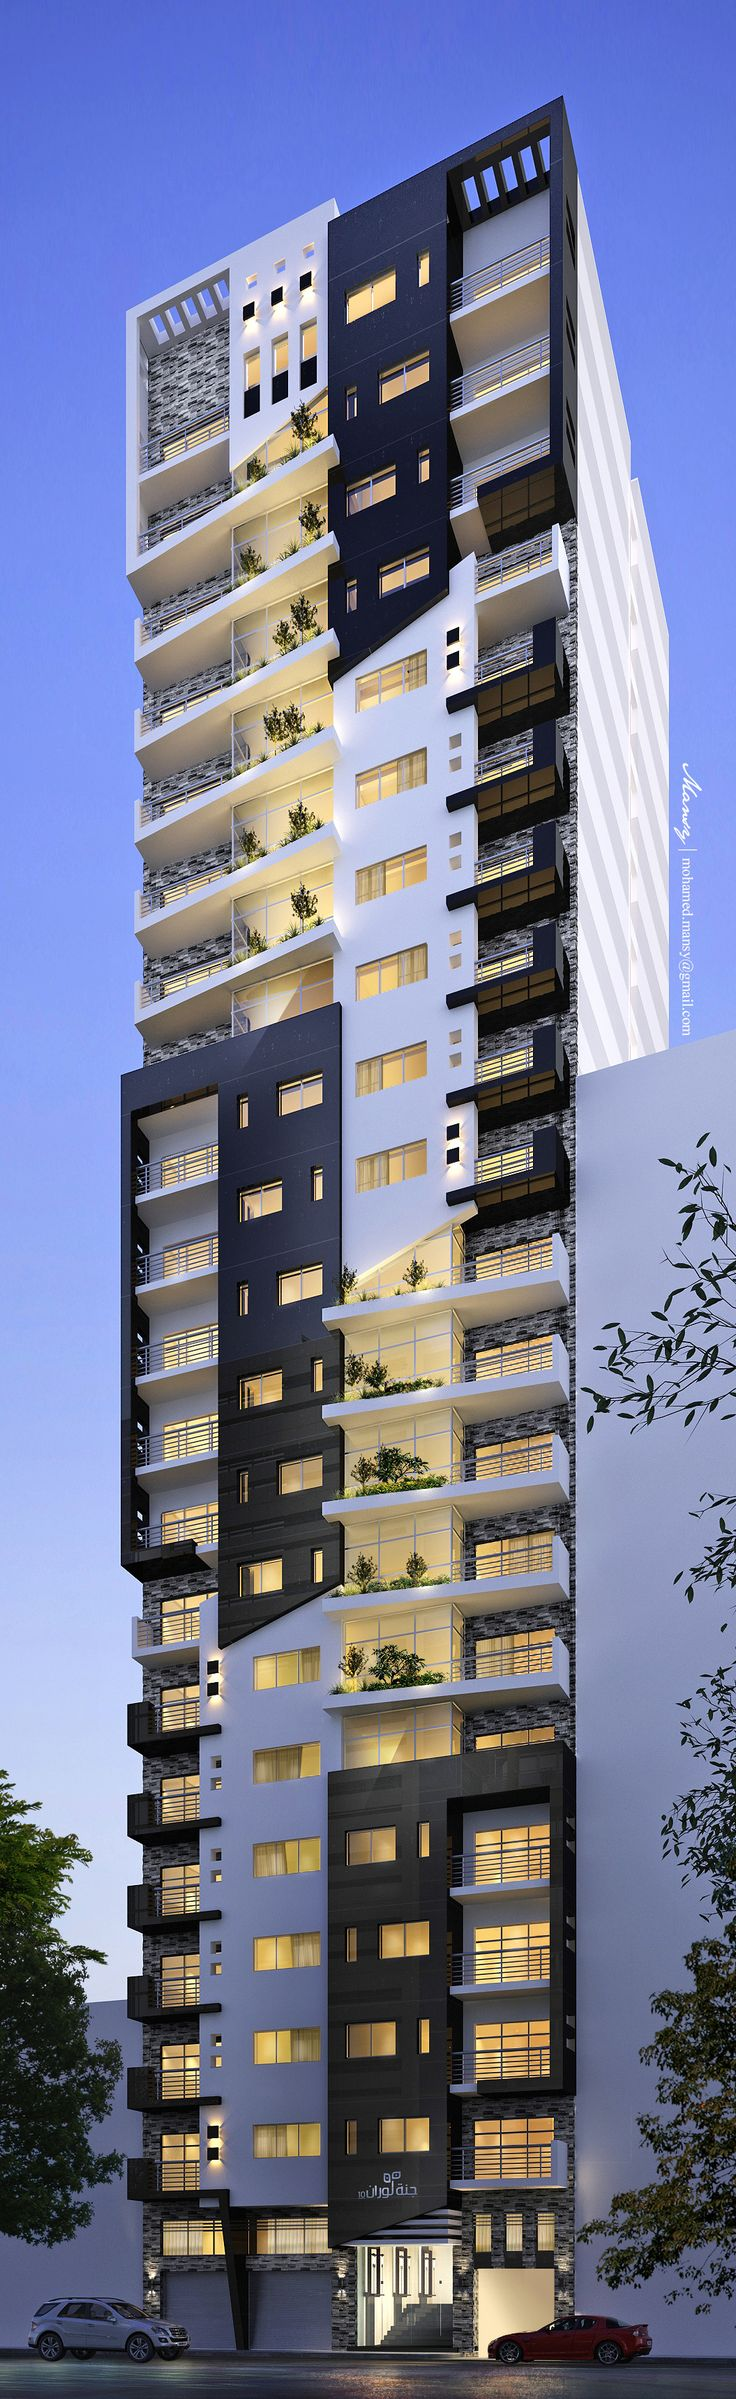 Residential buildings in Loran - Alexandria - 2014 - Project by Mohammad Mansy